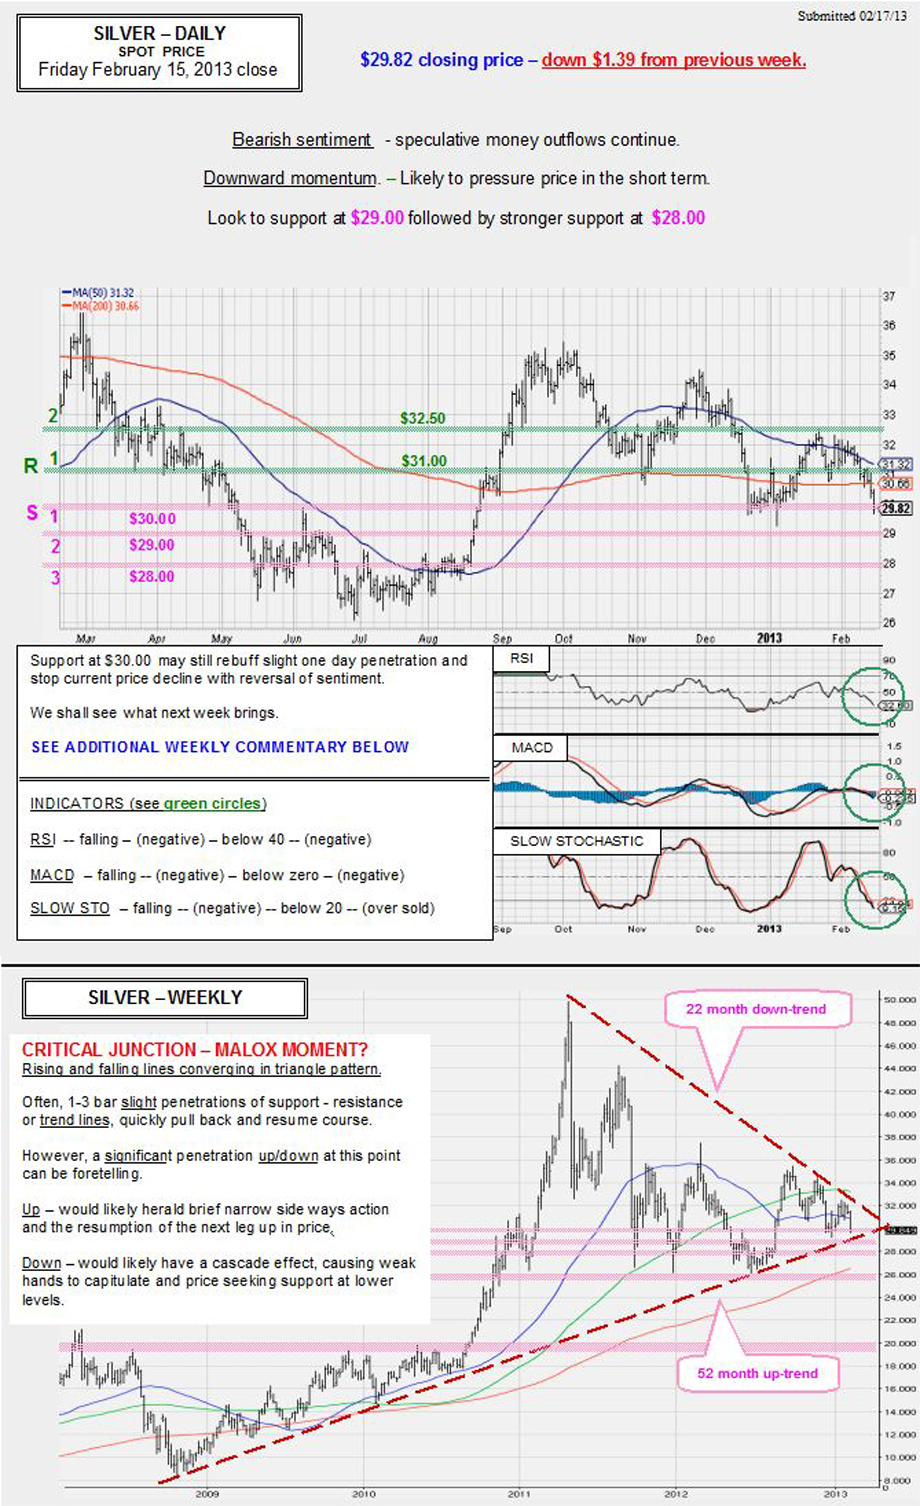 Feb. 15, 2013 chart & commentary